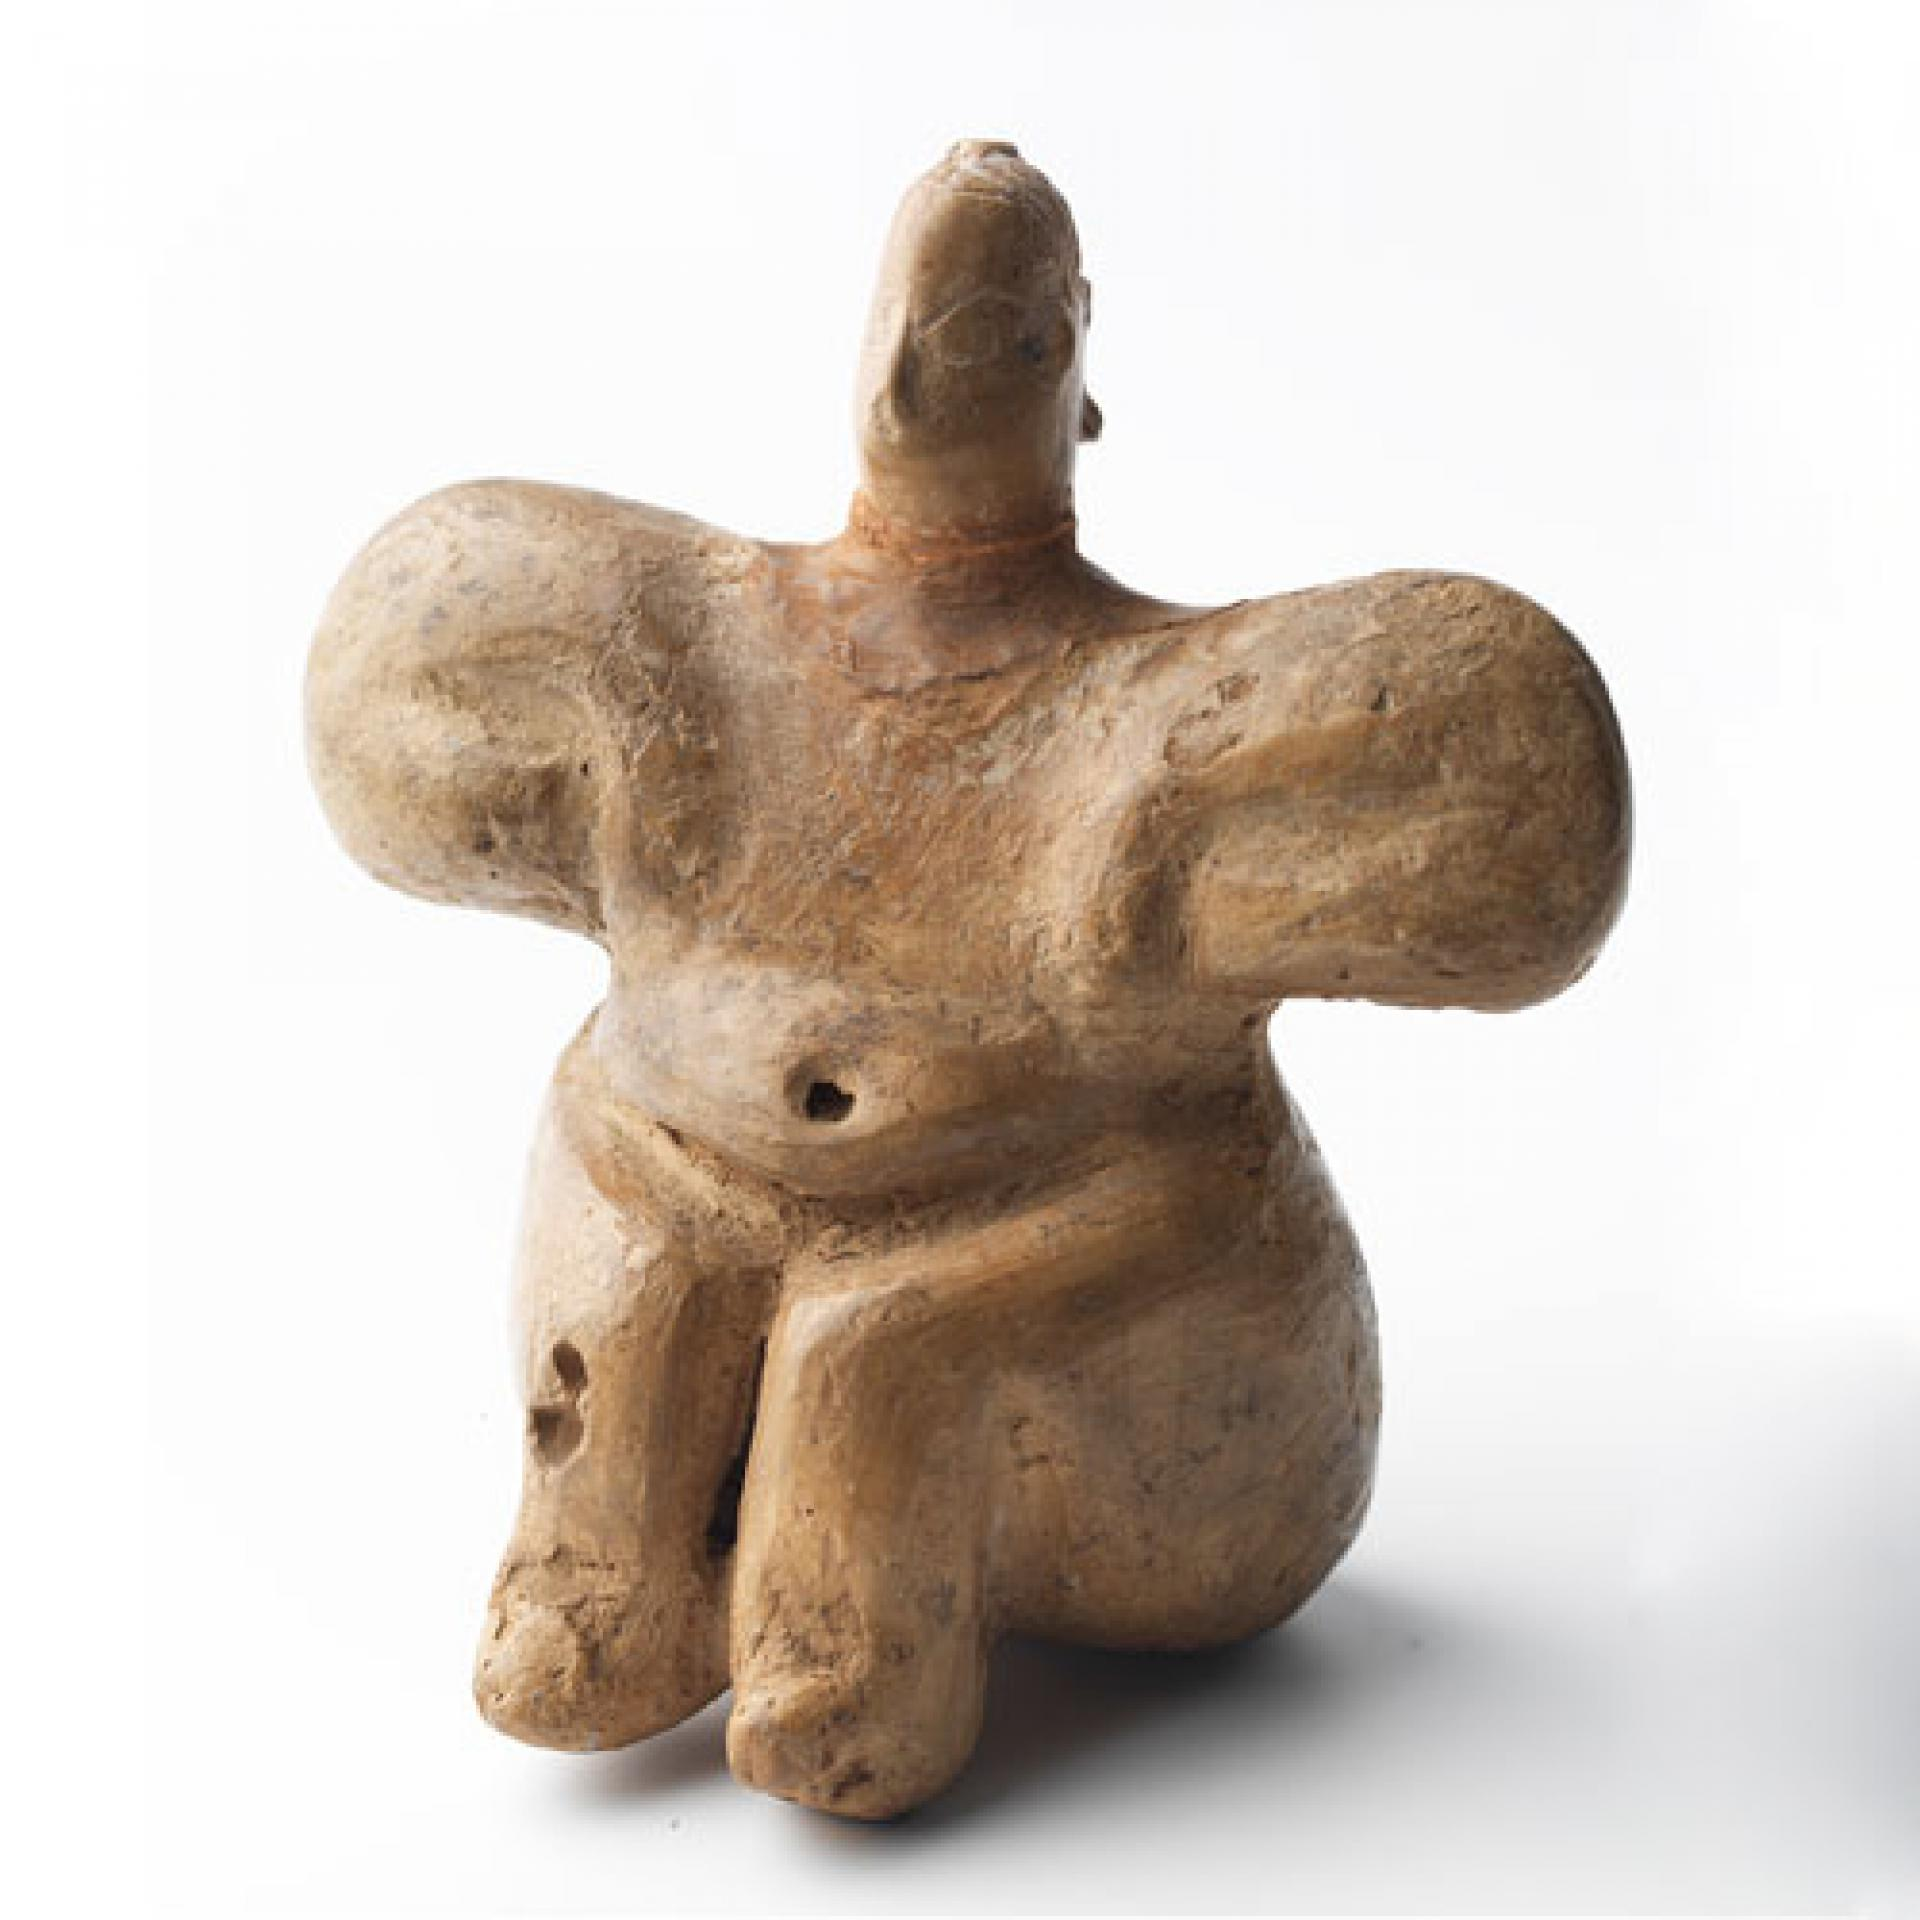 FIGURINE - COLLECTION - Sadberk Hanım Museum